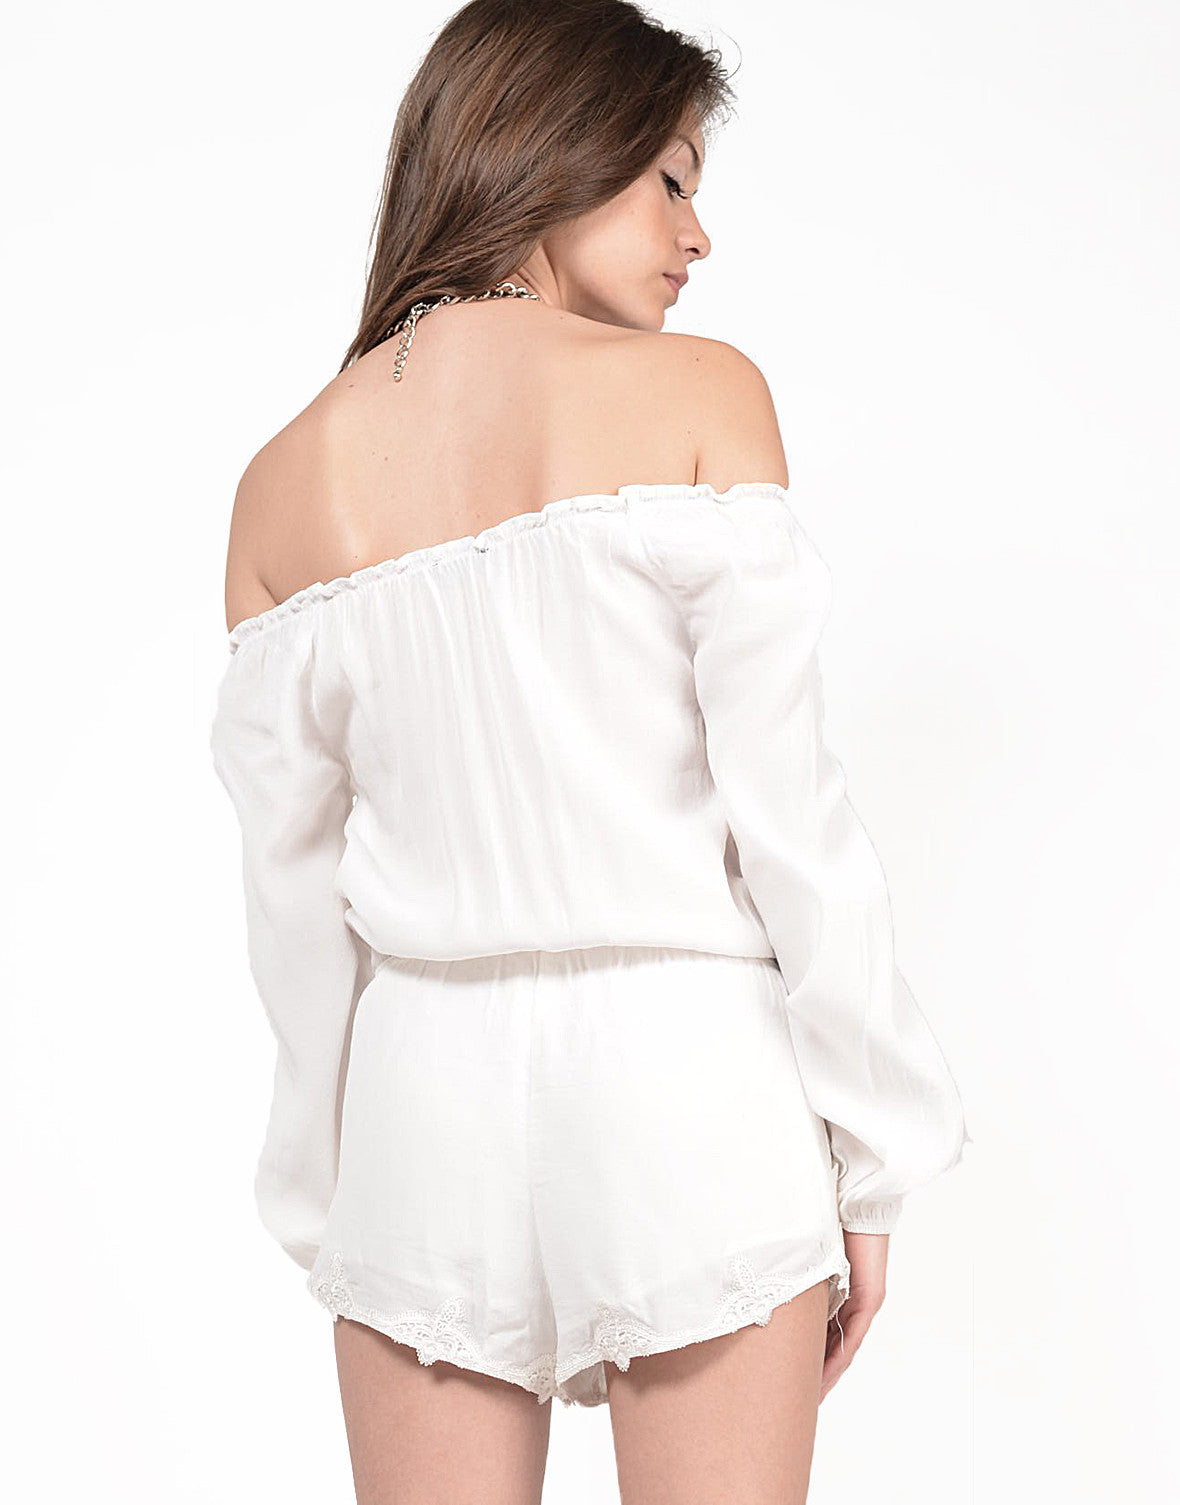 Back View of Off the Shoulder Long Sleeve Romper